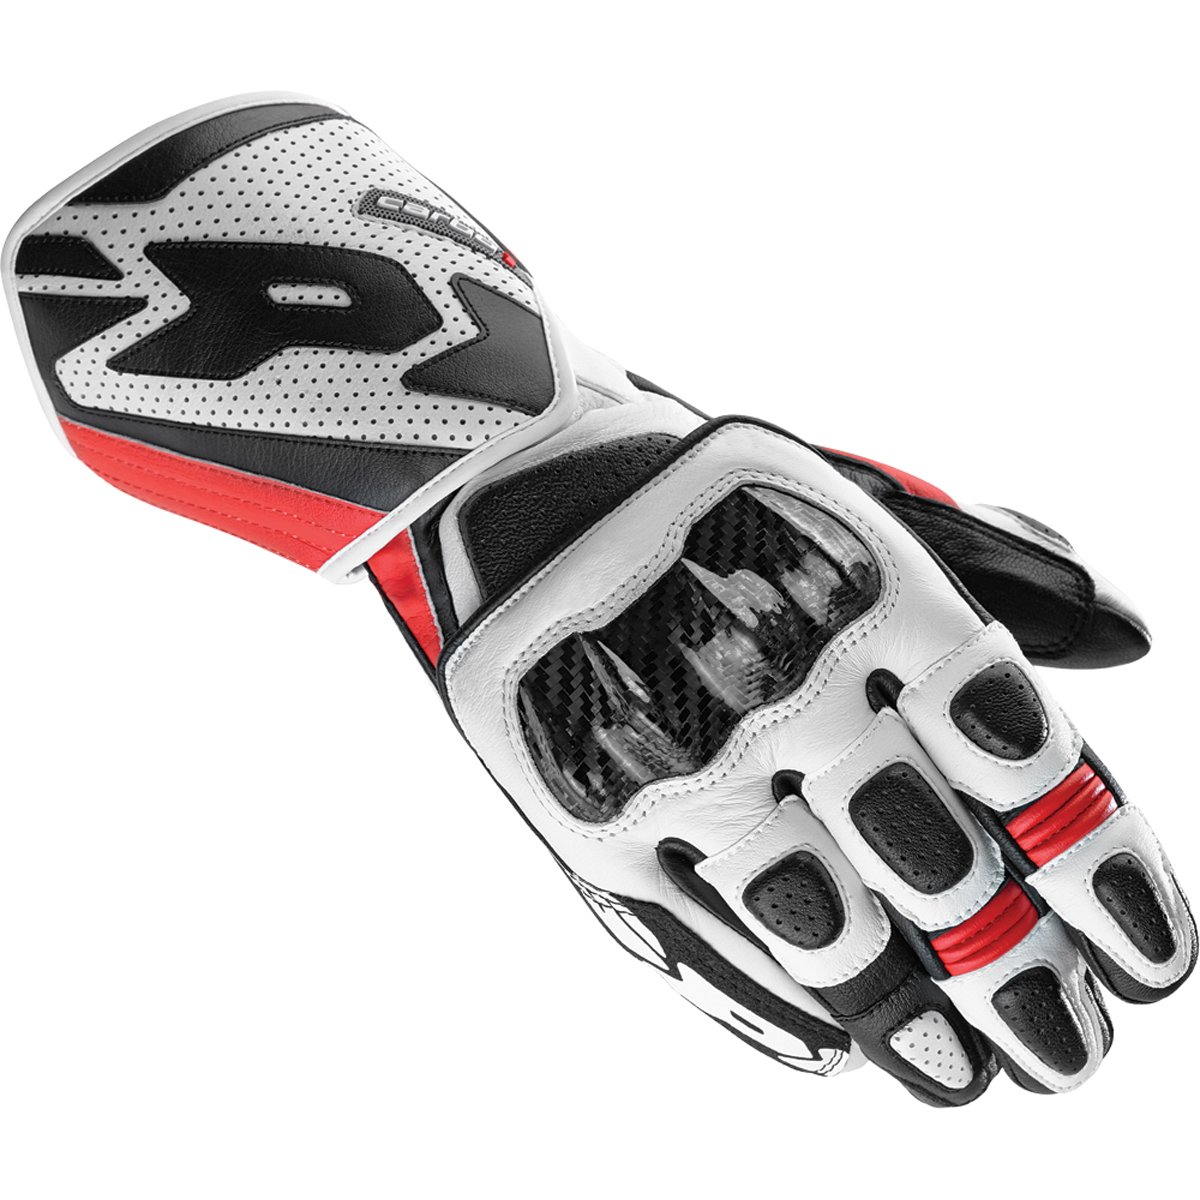 Spidi Carbo 1 Men's Leather Sports Bike Racing Motorcycle Gloves - Black/Red / X-Large